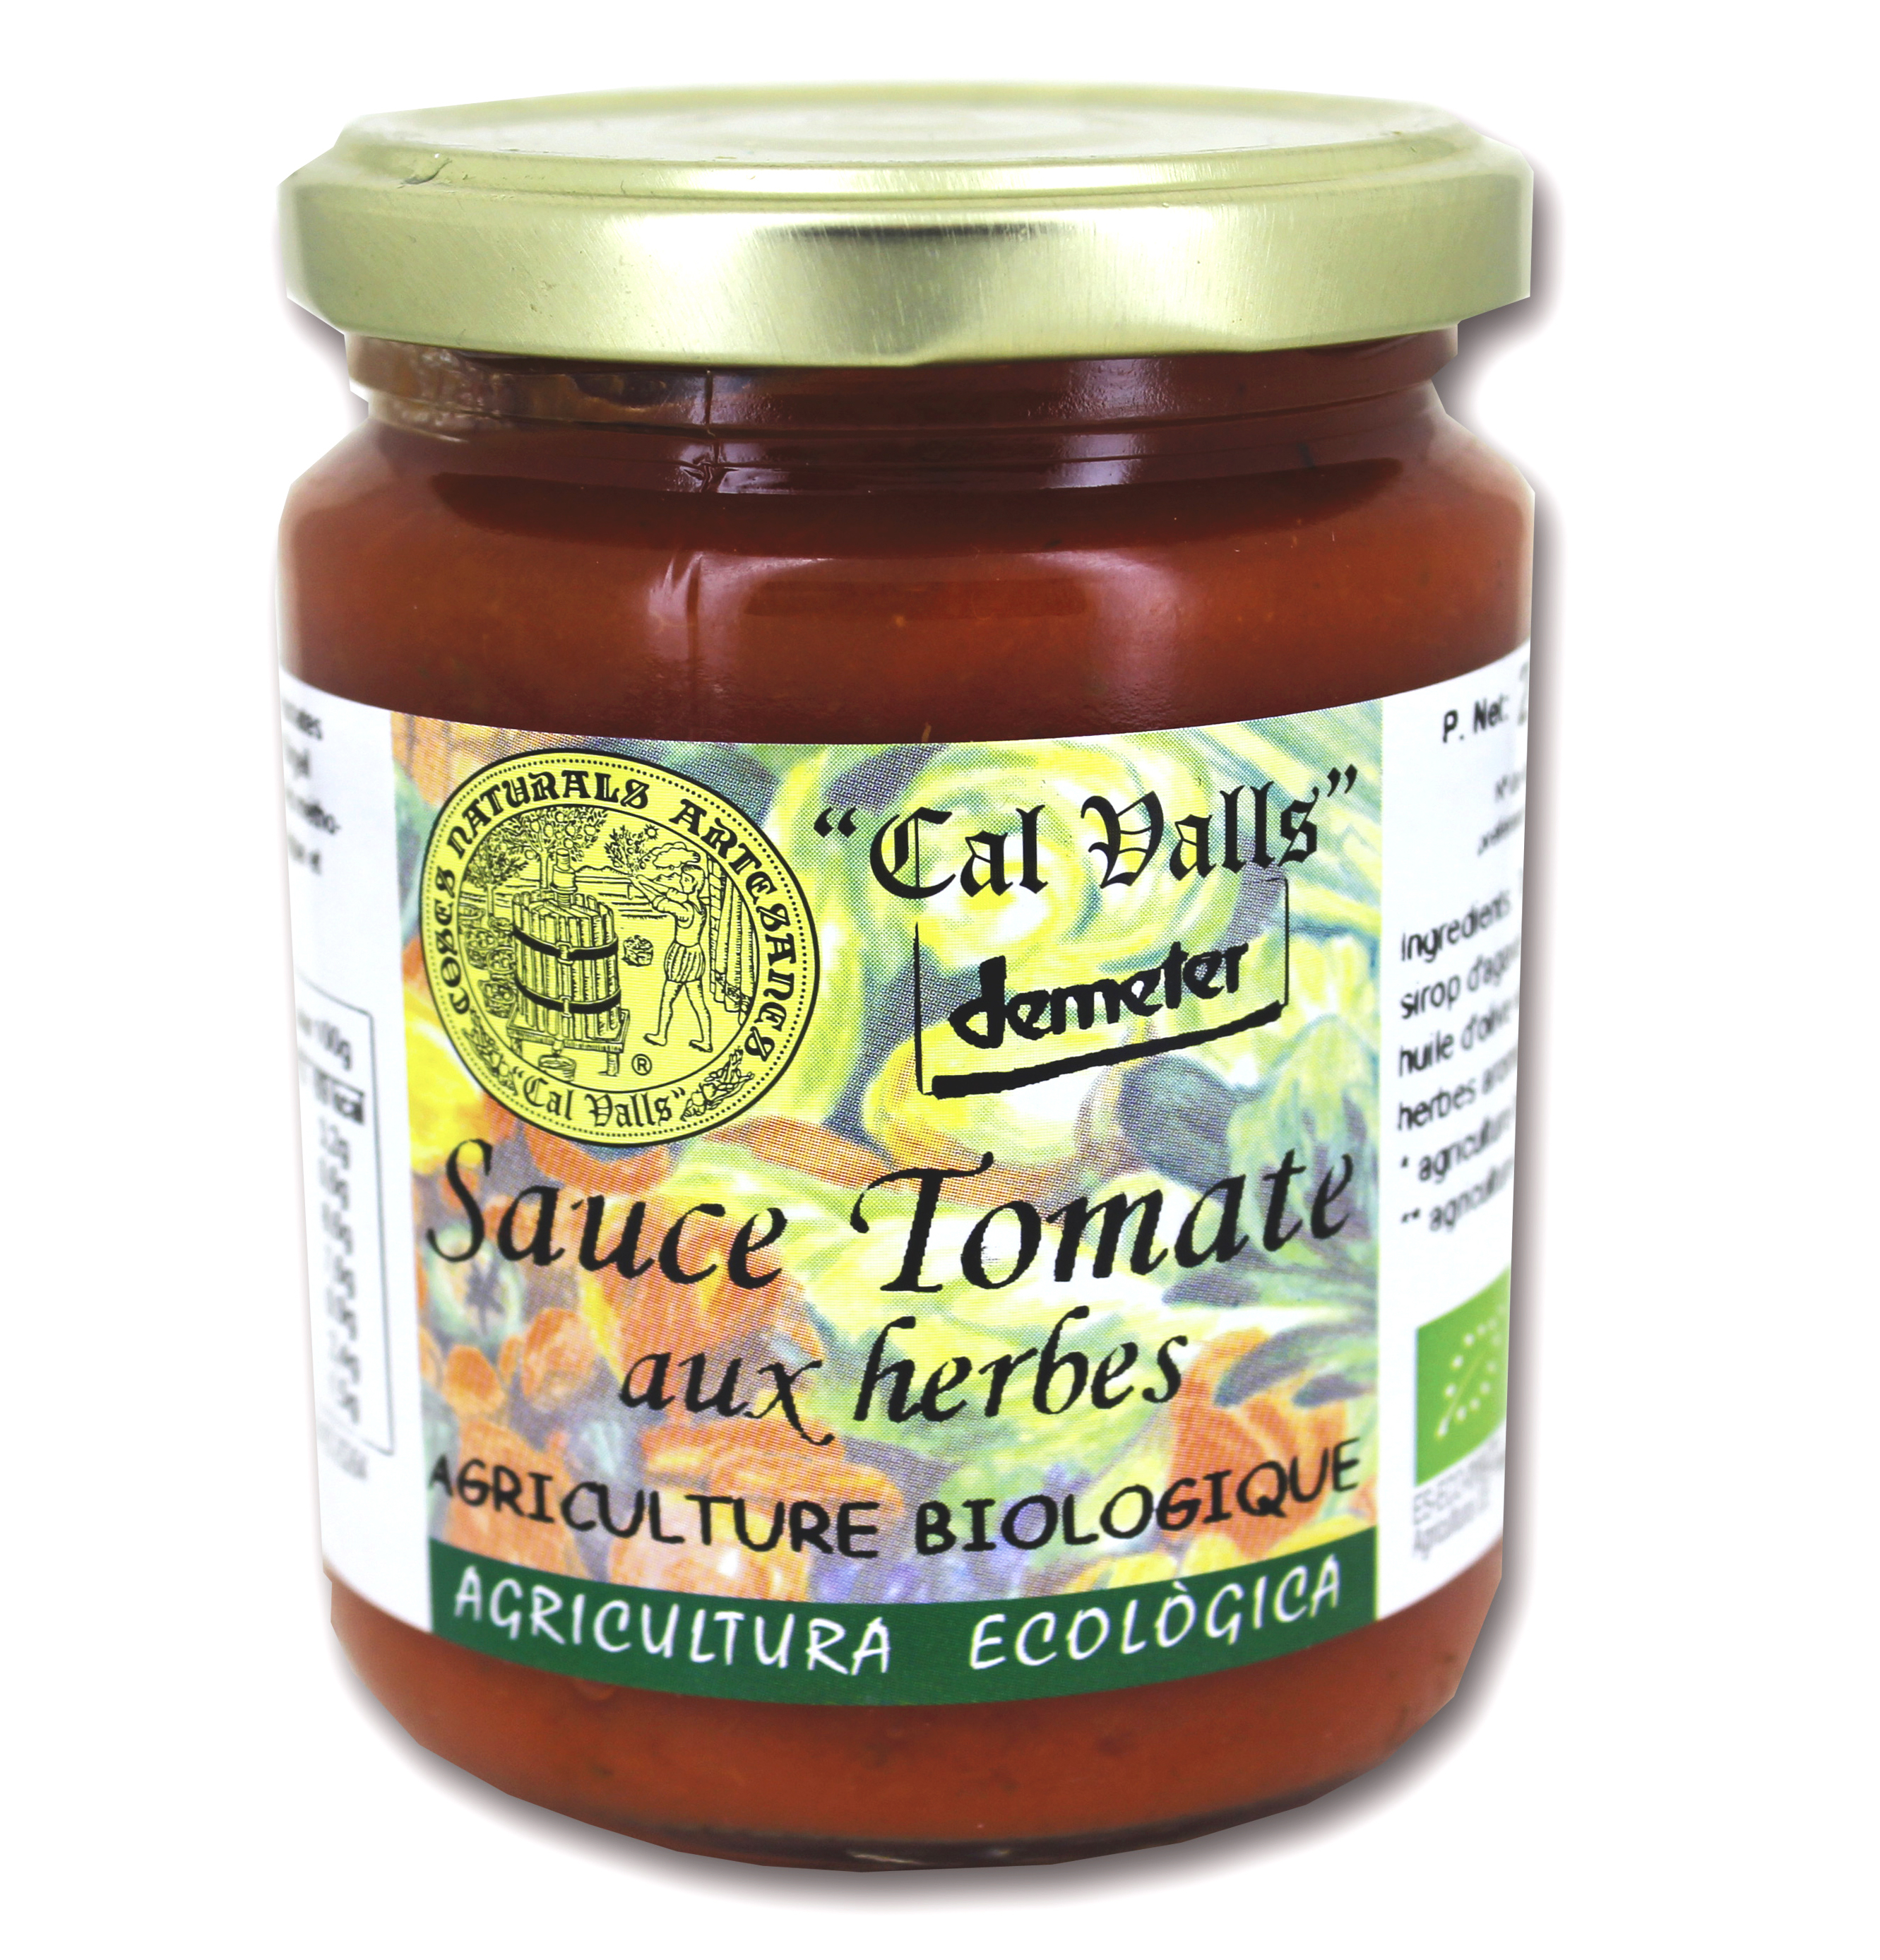 Sauce tomate aux herbes Bio, Cal Valls (270 g)